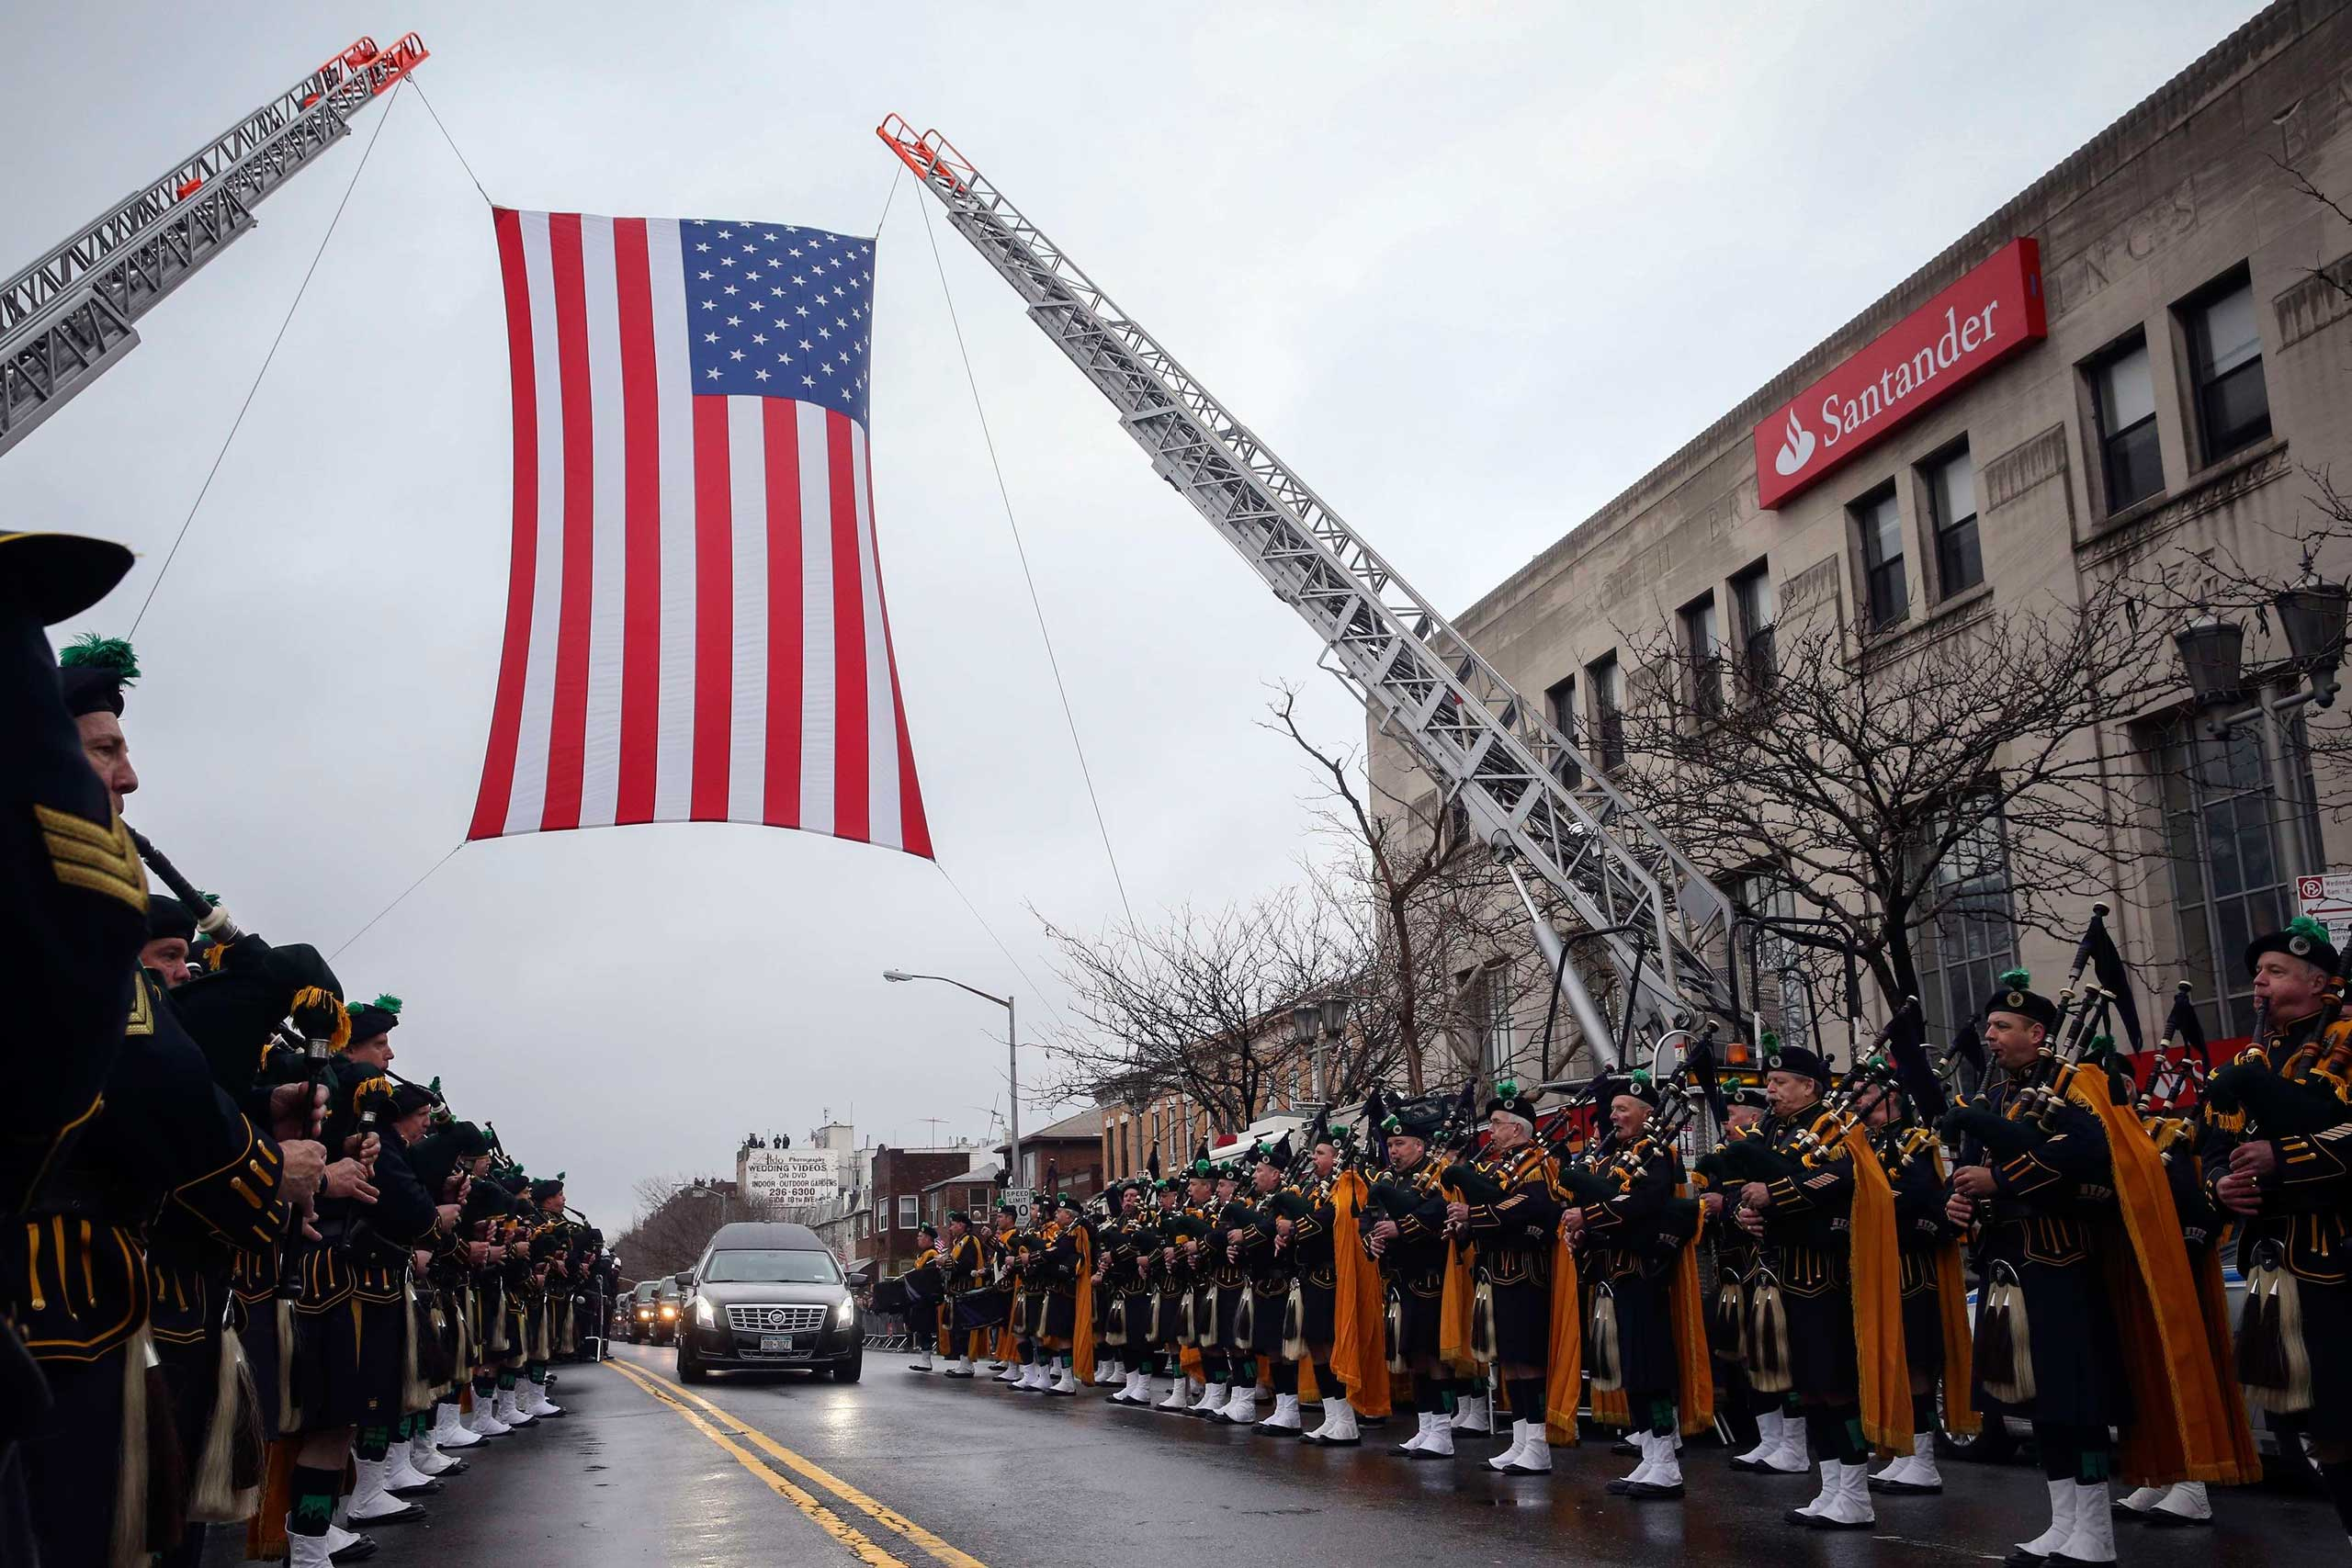 The hearse carrying NYPD officer Wenjian Liu makes its way under a US flag en route to the cemetery in the Brooklyn borough of New York on Jan. 4, 2015.